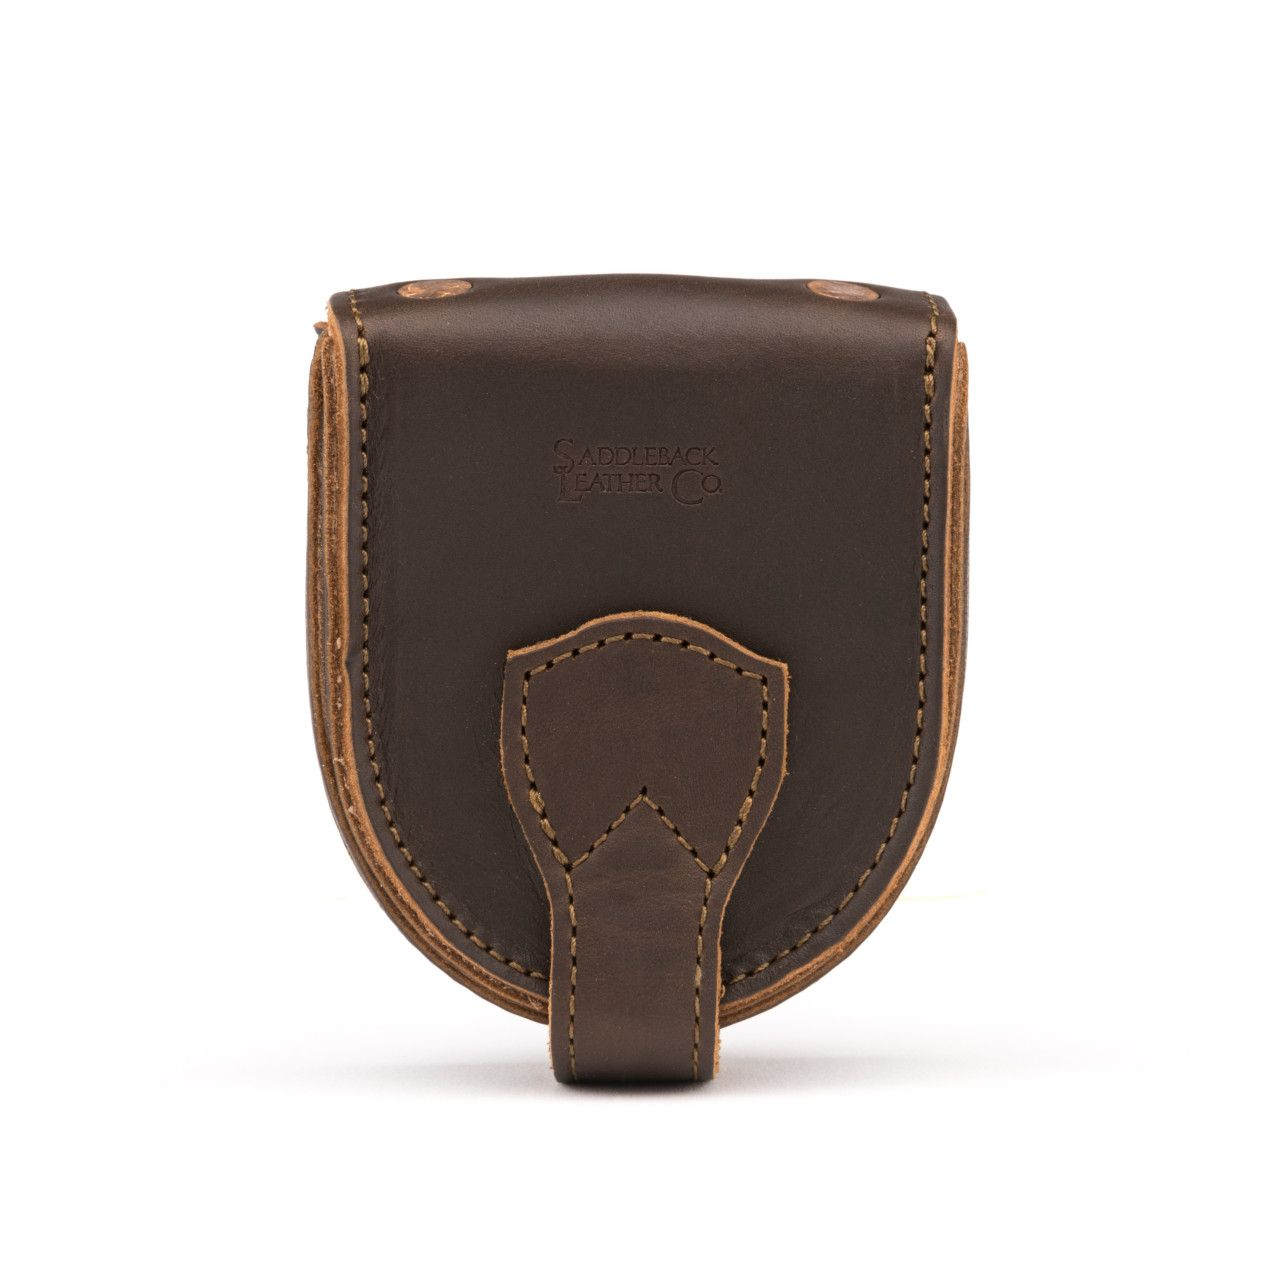 leather coin purse in dark coffee brown leather